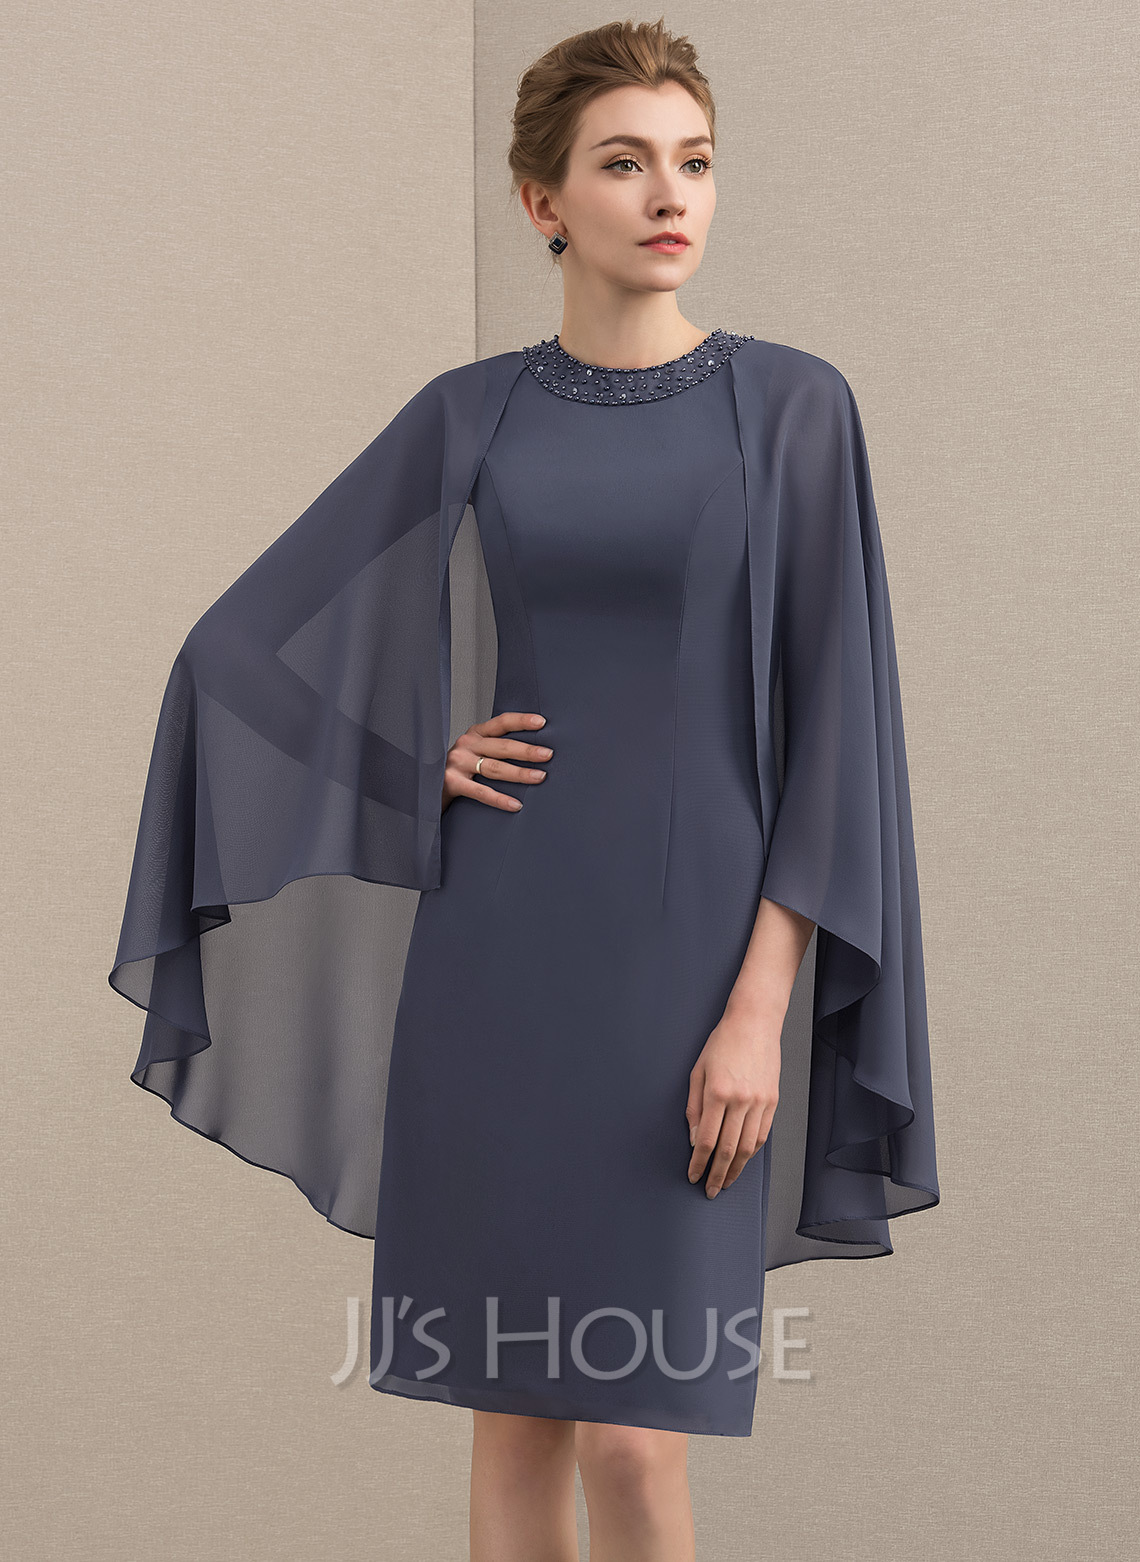 Sheath/Column Scoop Neck Knee-Length Chiffon Mother of the Bride Dress With Beading Sequins